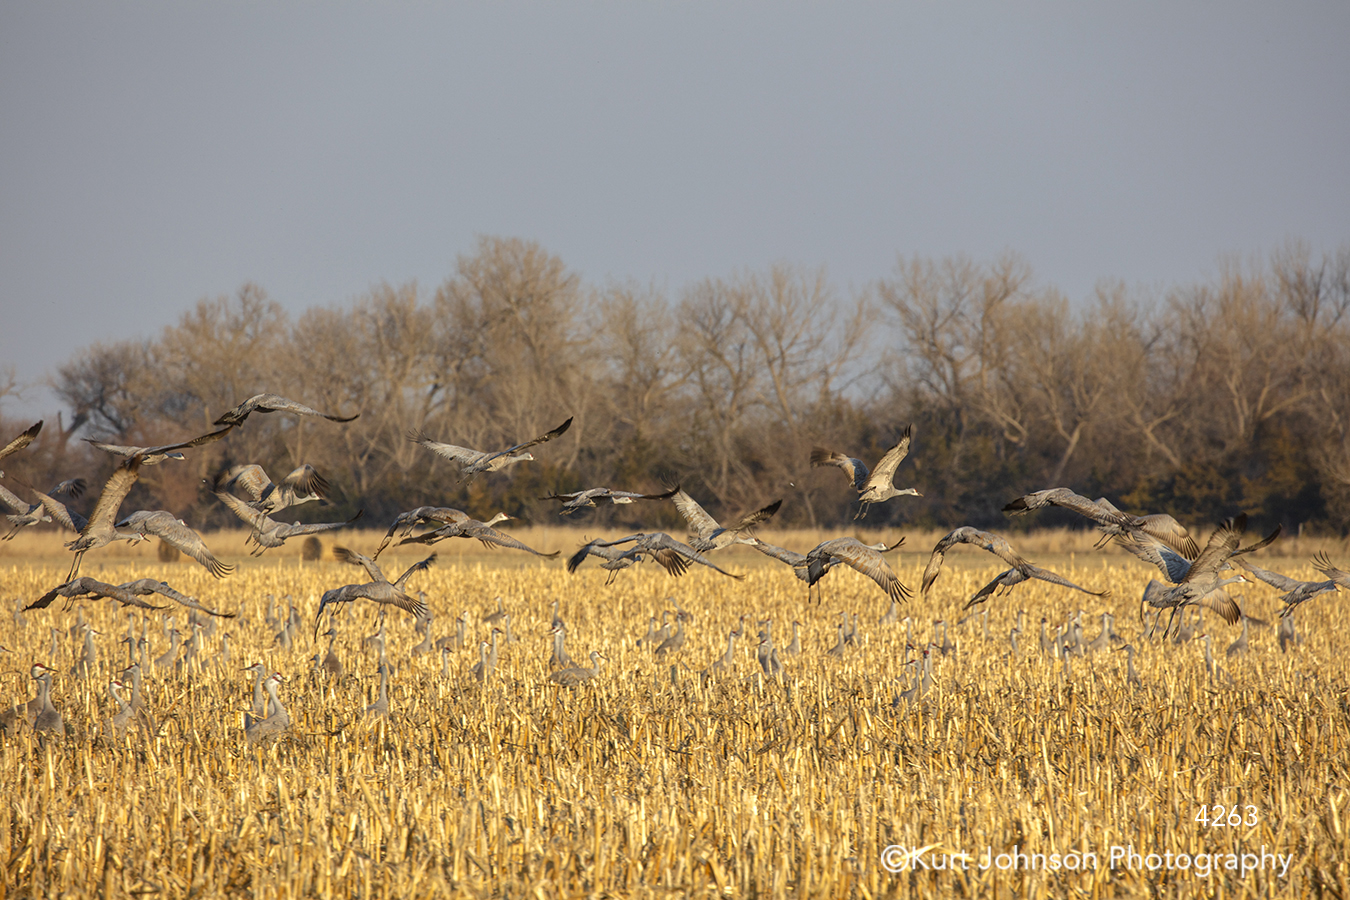 sandhill cranes birds fly flying yellow gold wheat field animal nature wildlife midwest